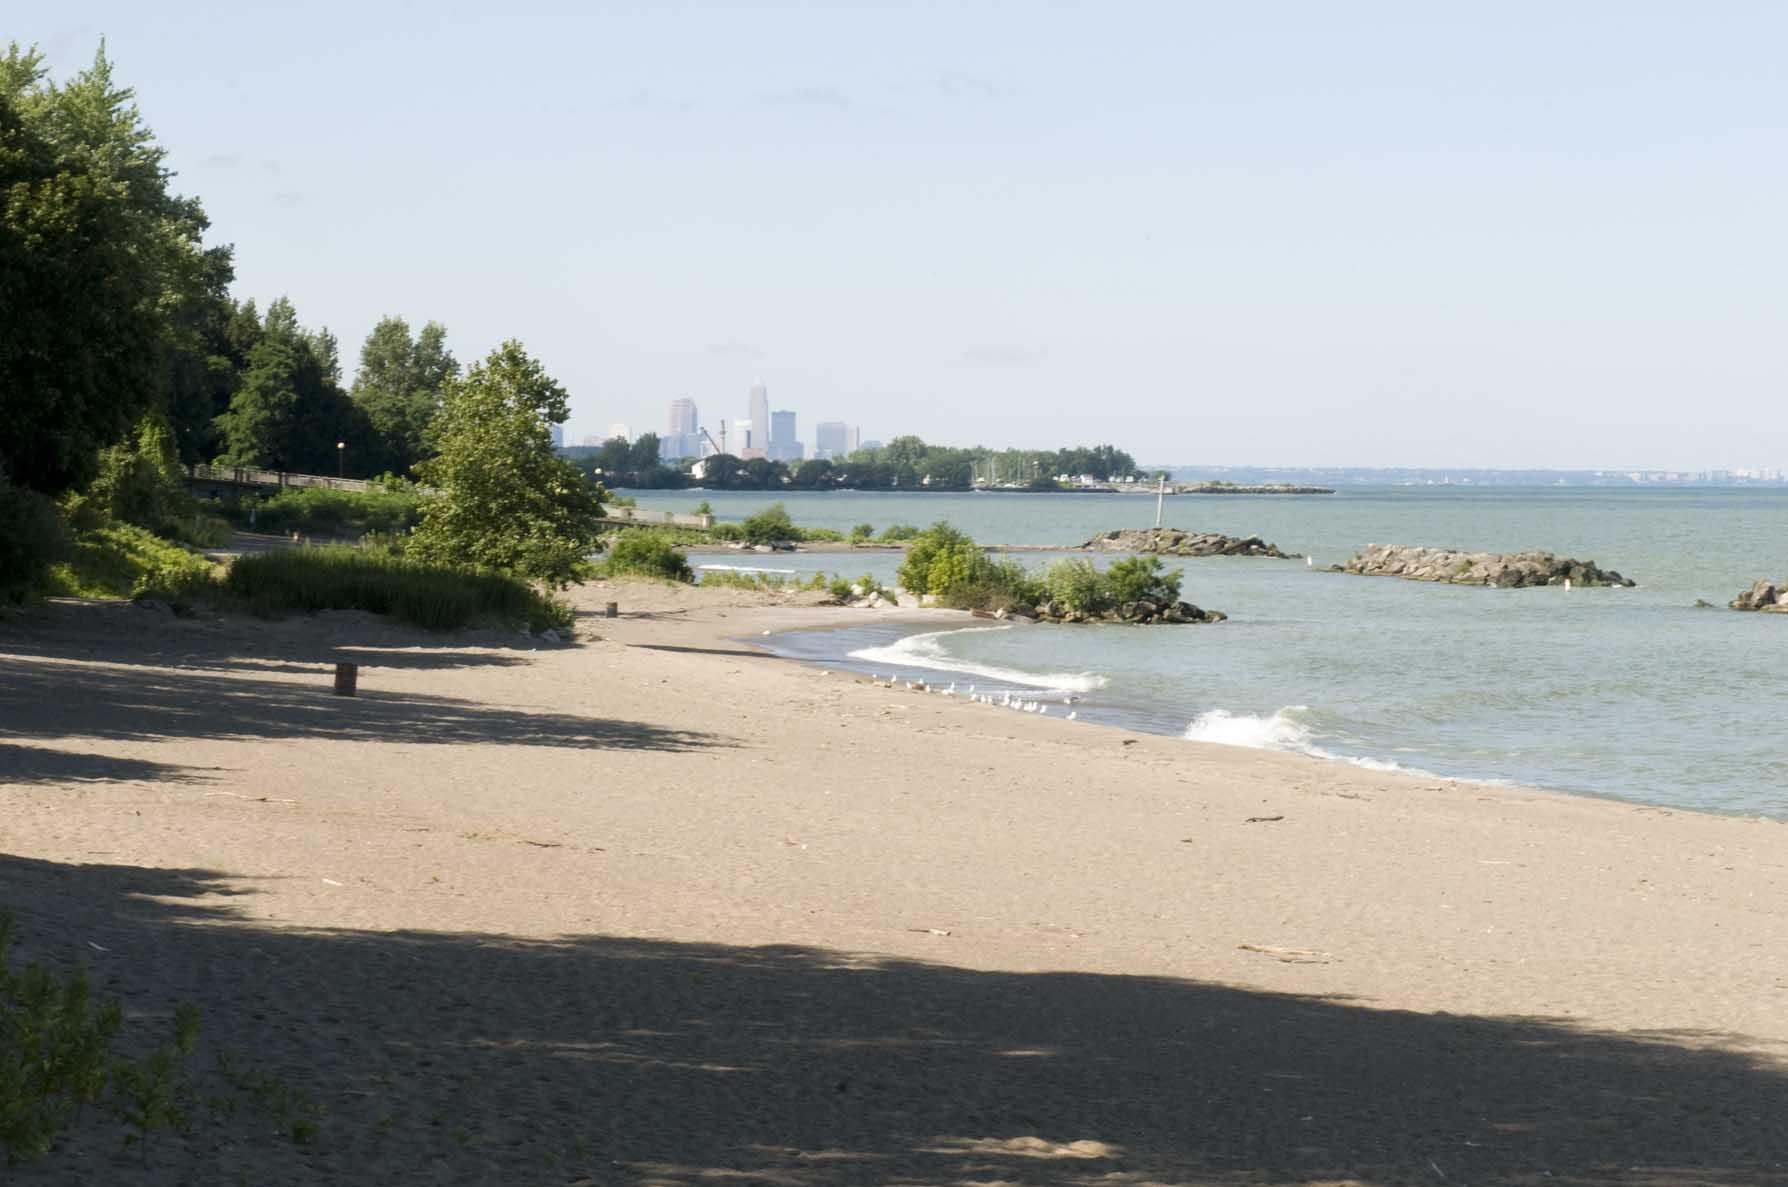 EXPLORE THE LAKE ERIE SHORE AT CLEVELAND METROPARKS